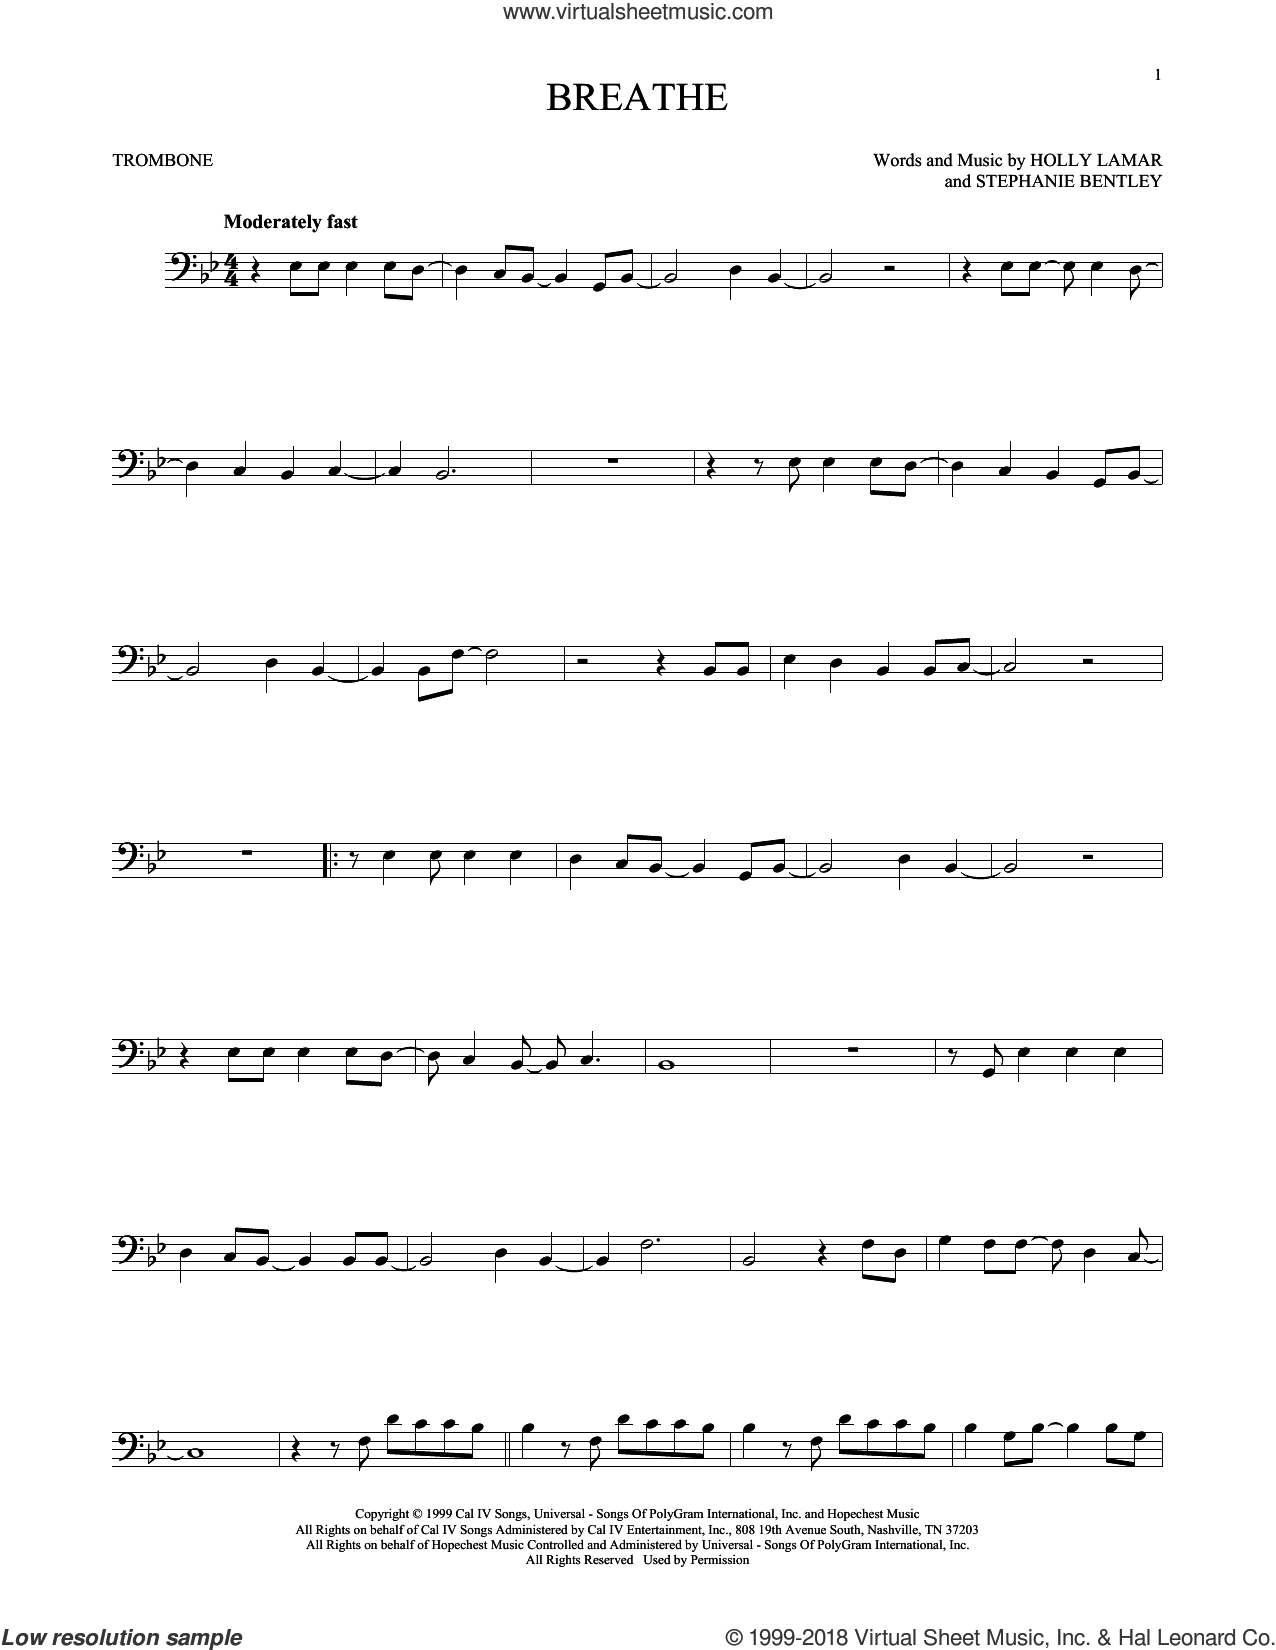 Breathe sheet music for trombone solo by Faith Hill, Holly Lamar and Stephanie Bentley, intermediate skill level